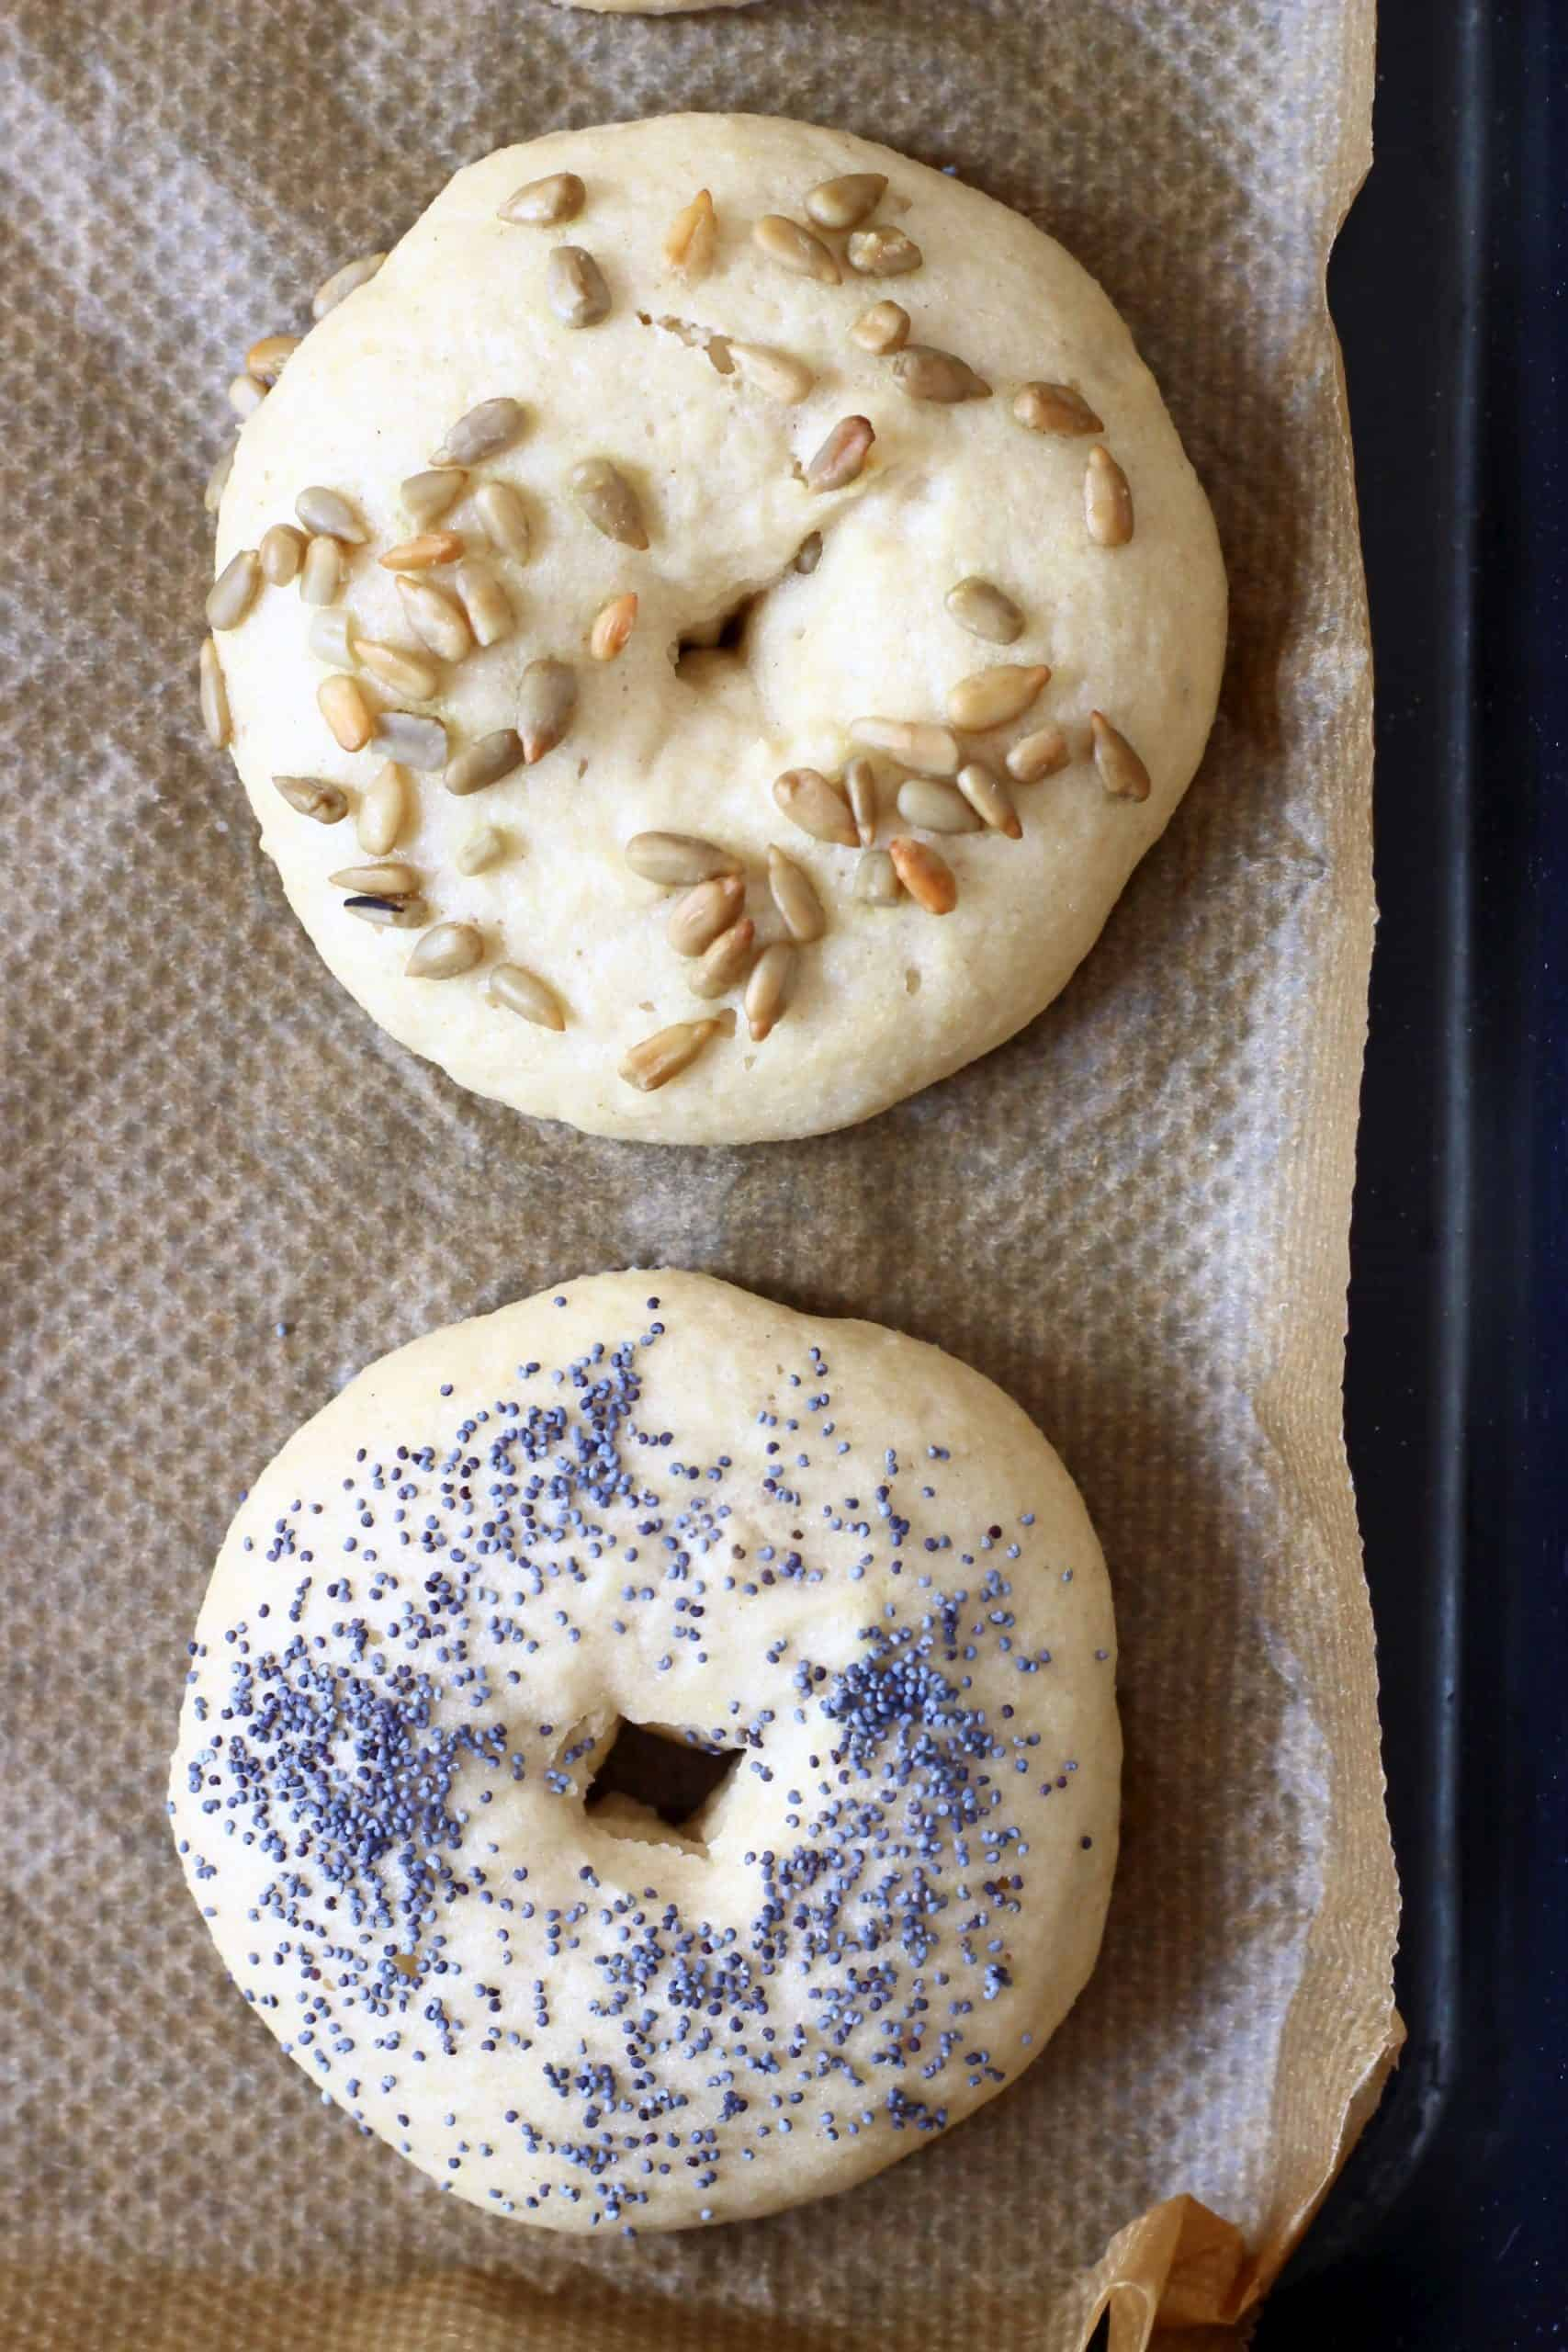 Two bagels on a sheet of brown baking paper